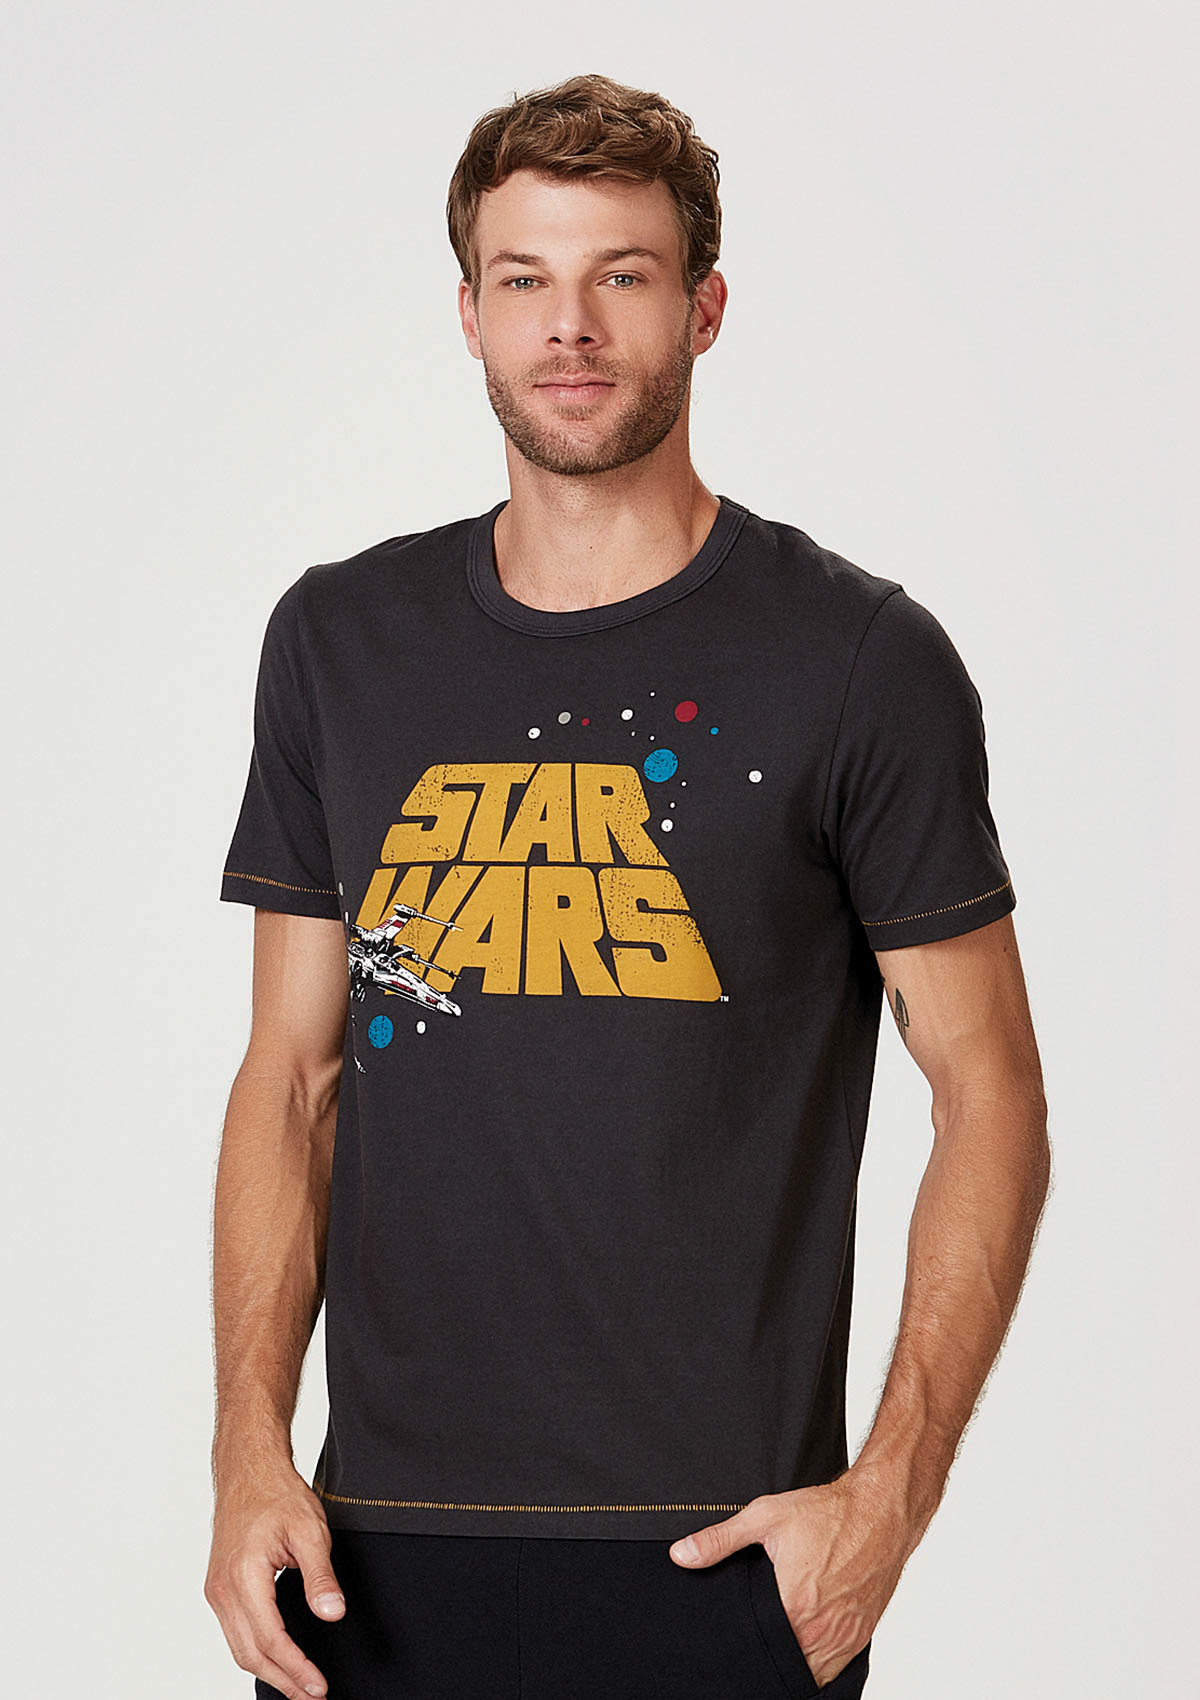 Camiseta Manga Curta Star Wars